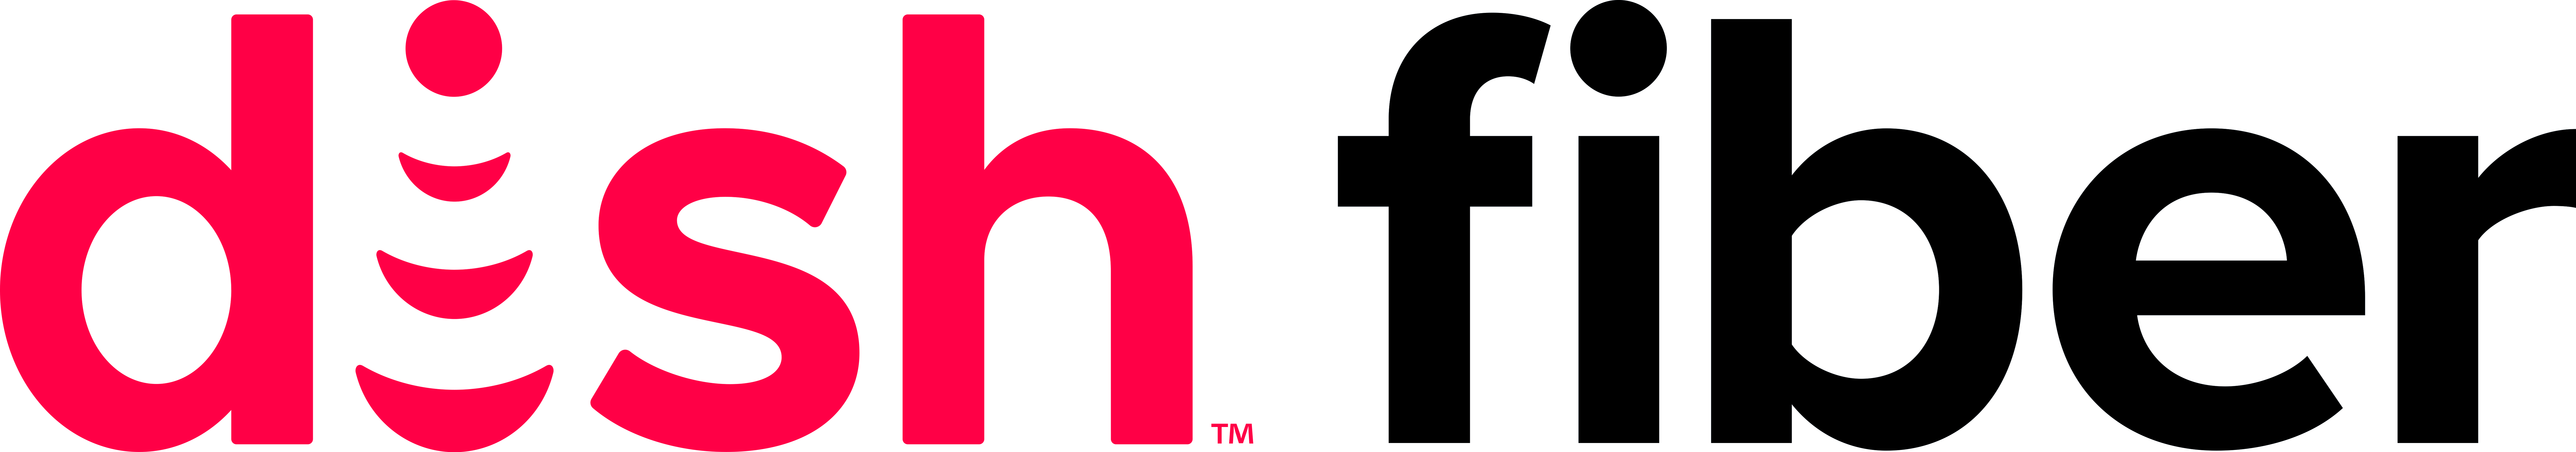 DISH_fiber_LOGO_RED+BLACK_Horizontal_040419_RGB.jpg